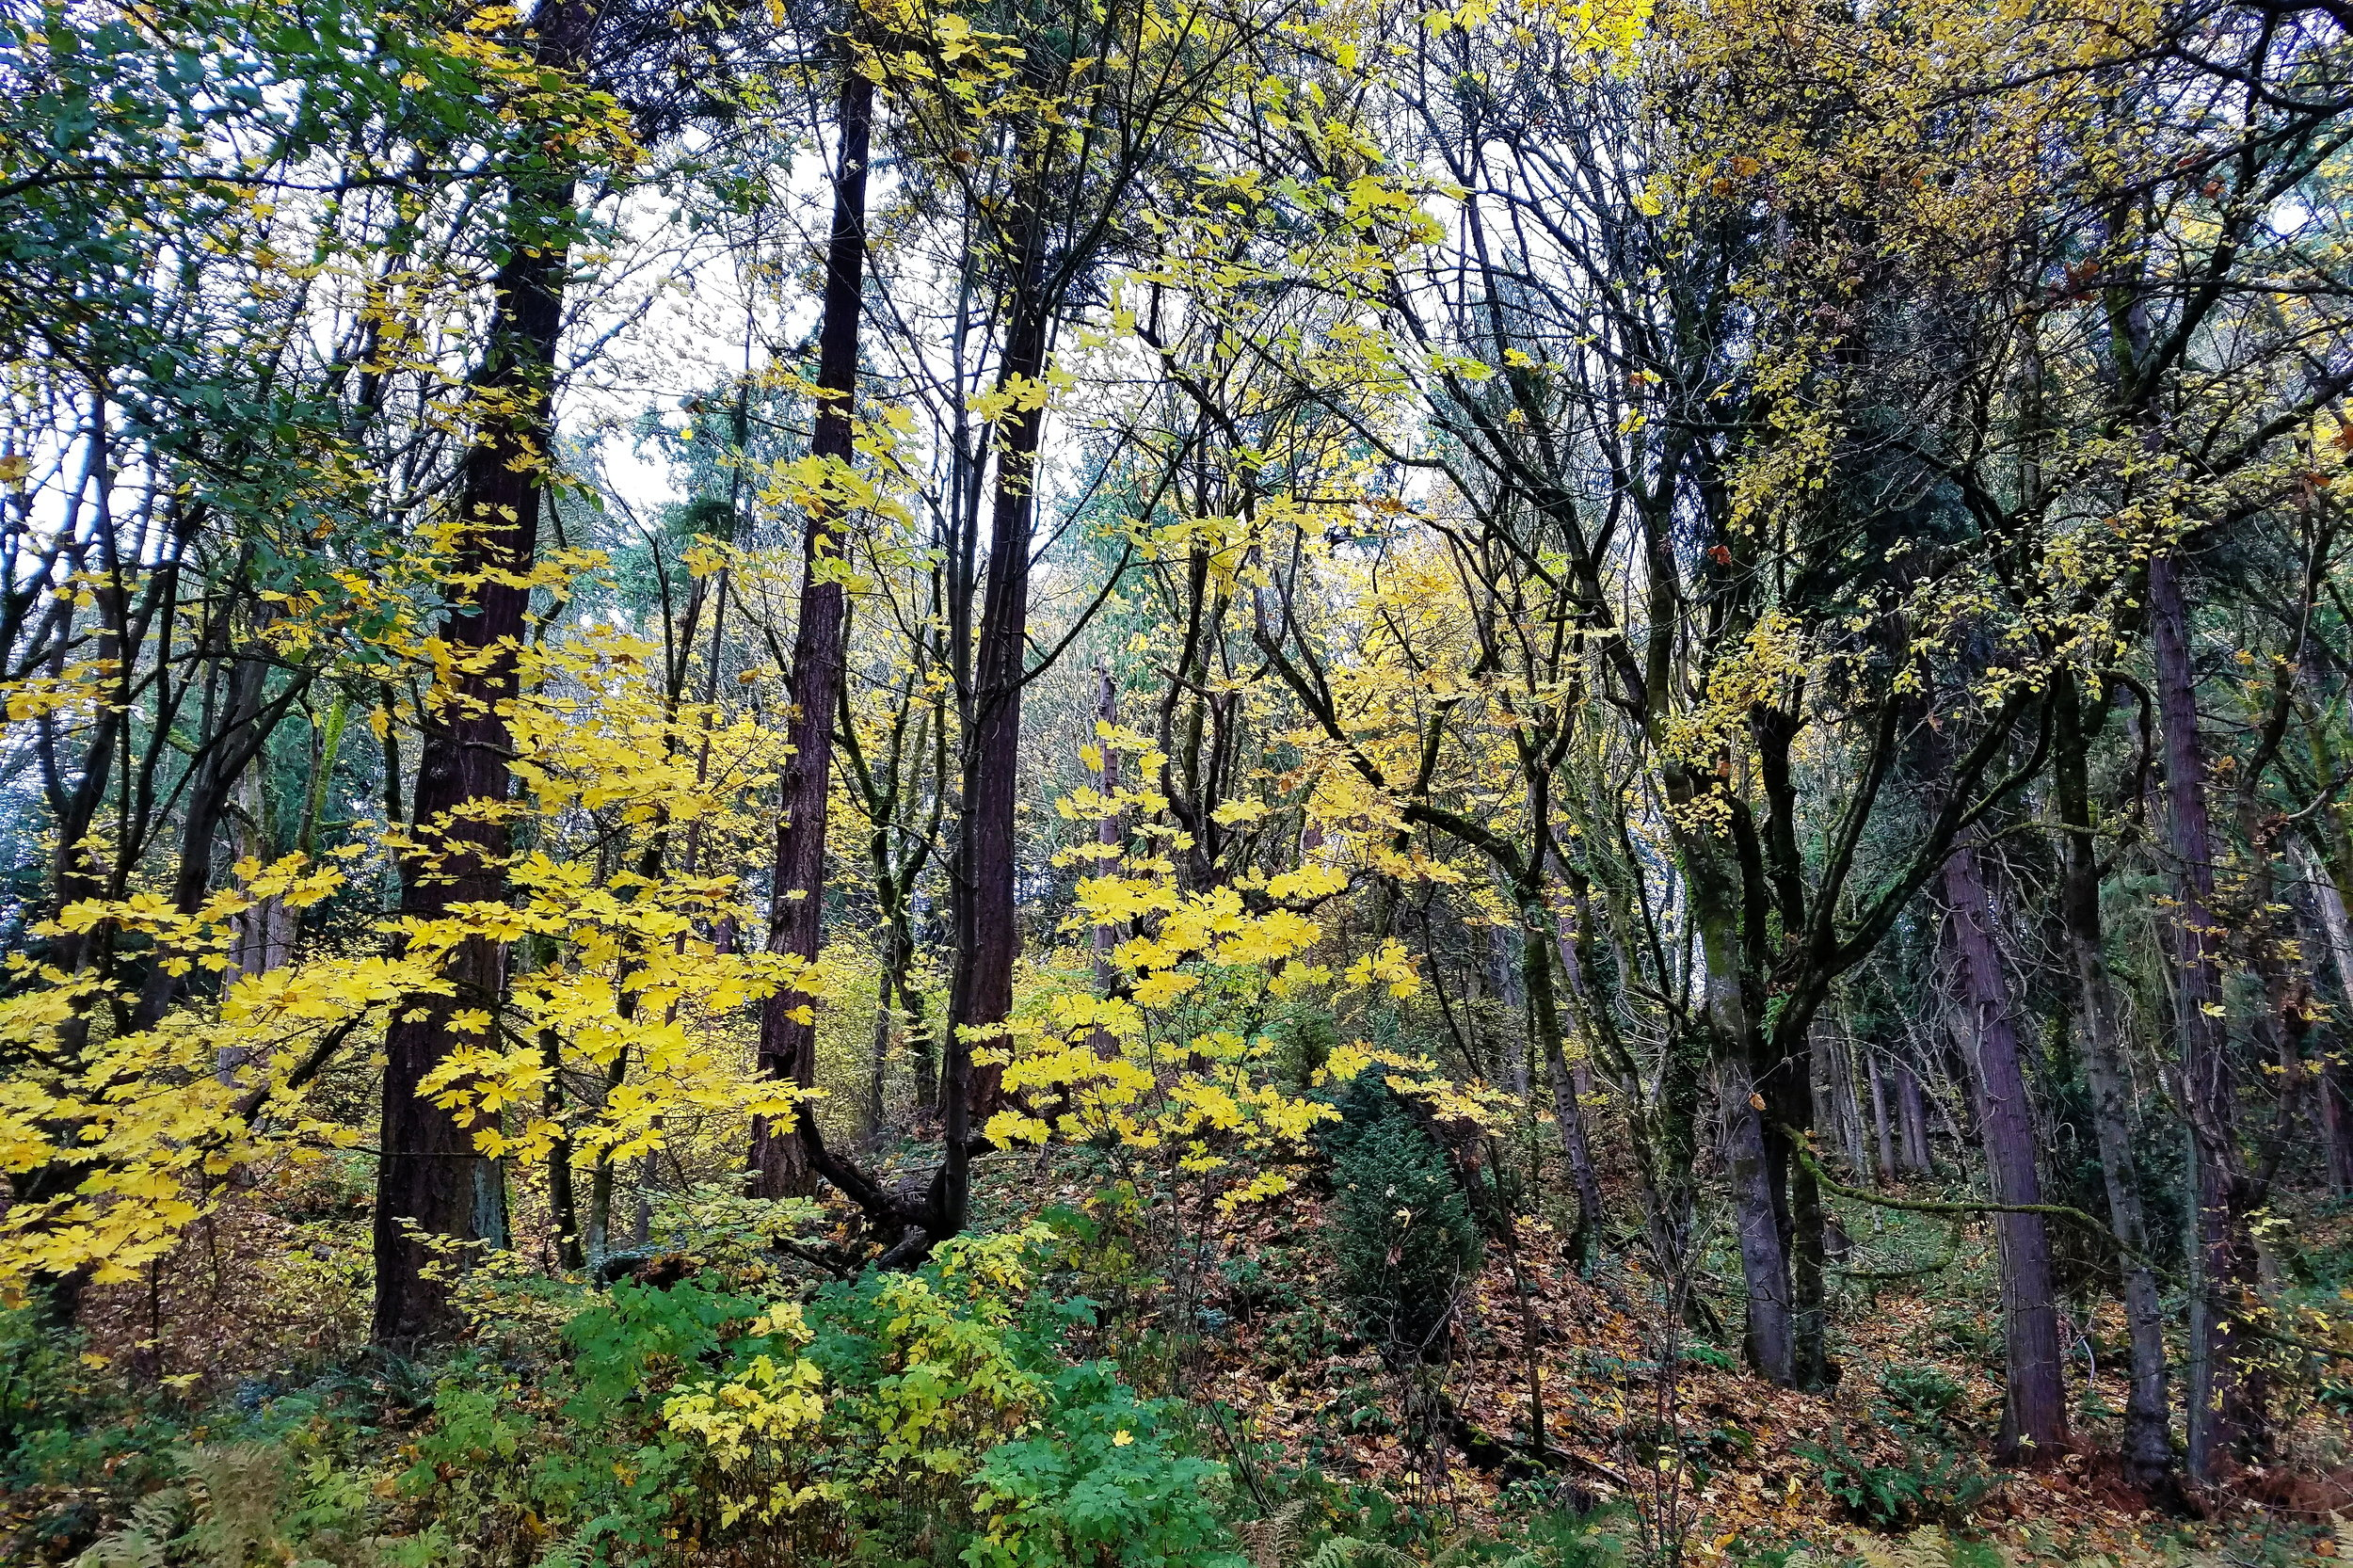 The last of the gorgeous fall foliage lingering on the trees